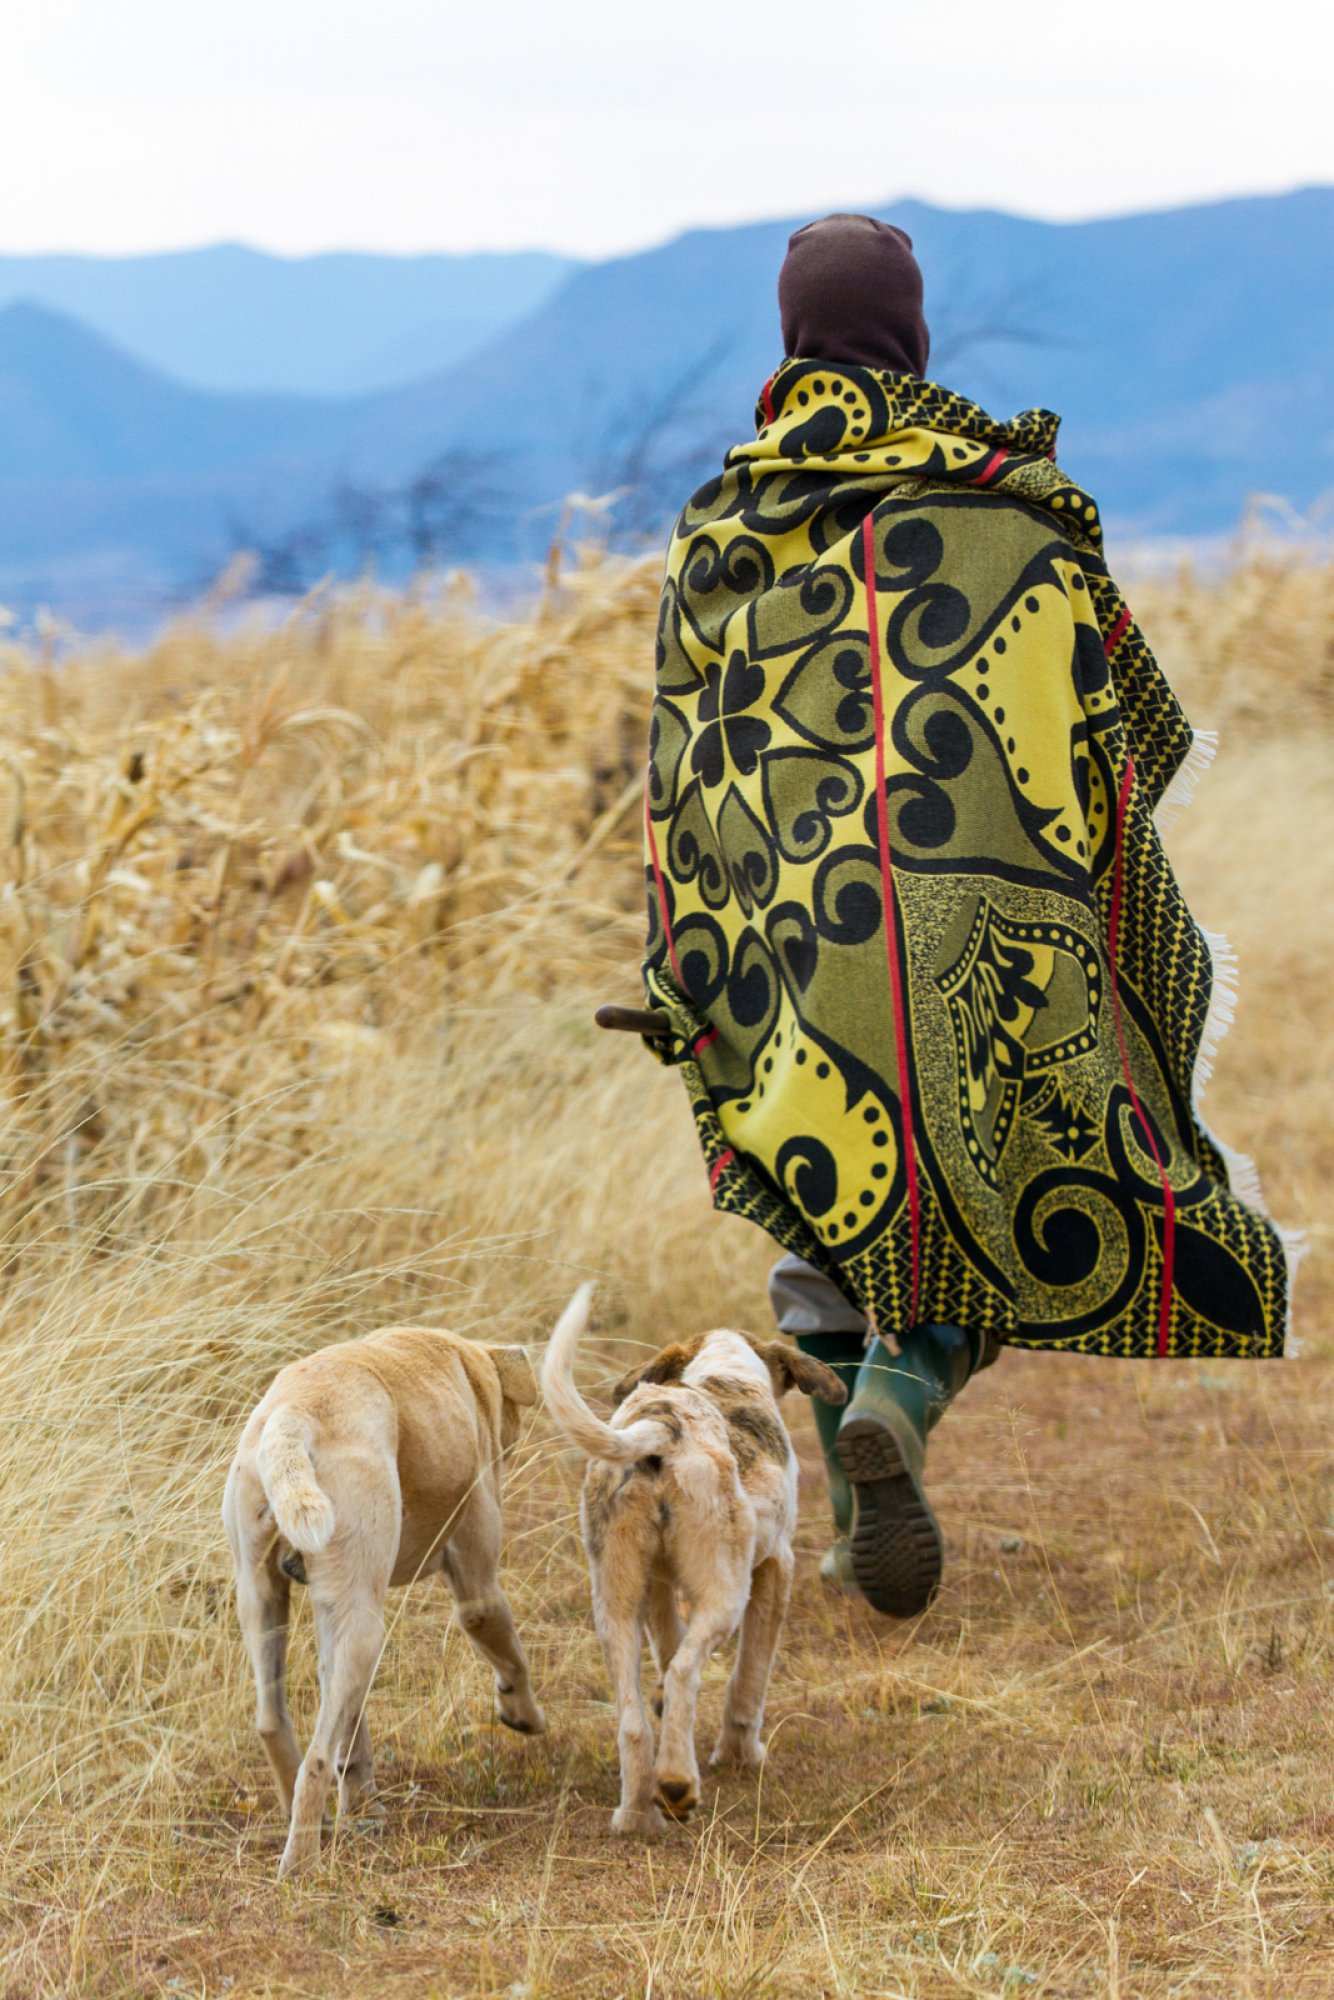 https://bubo.sk/uploads/galleries/16033/lesotho-unidentified-basotho-man-with-2-dogs-wearing-traditional-blanket-lesotho.jpg